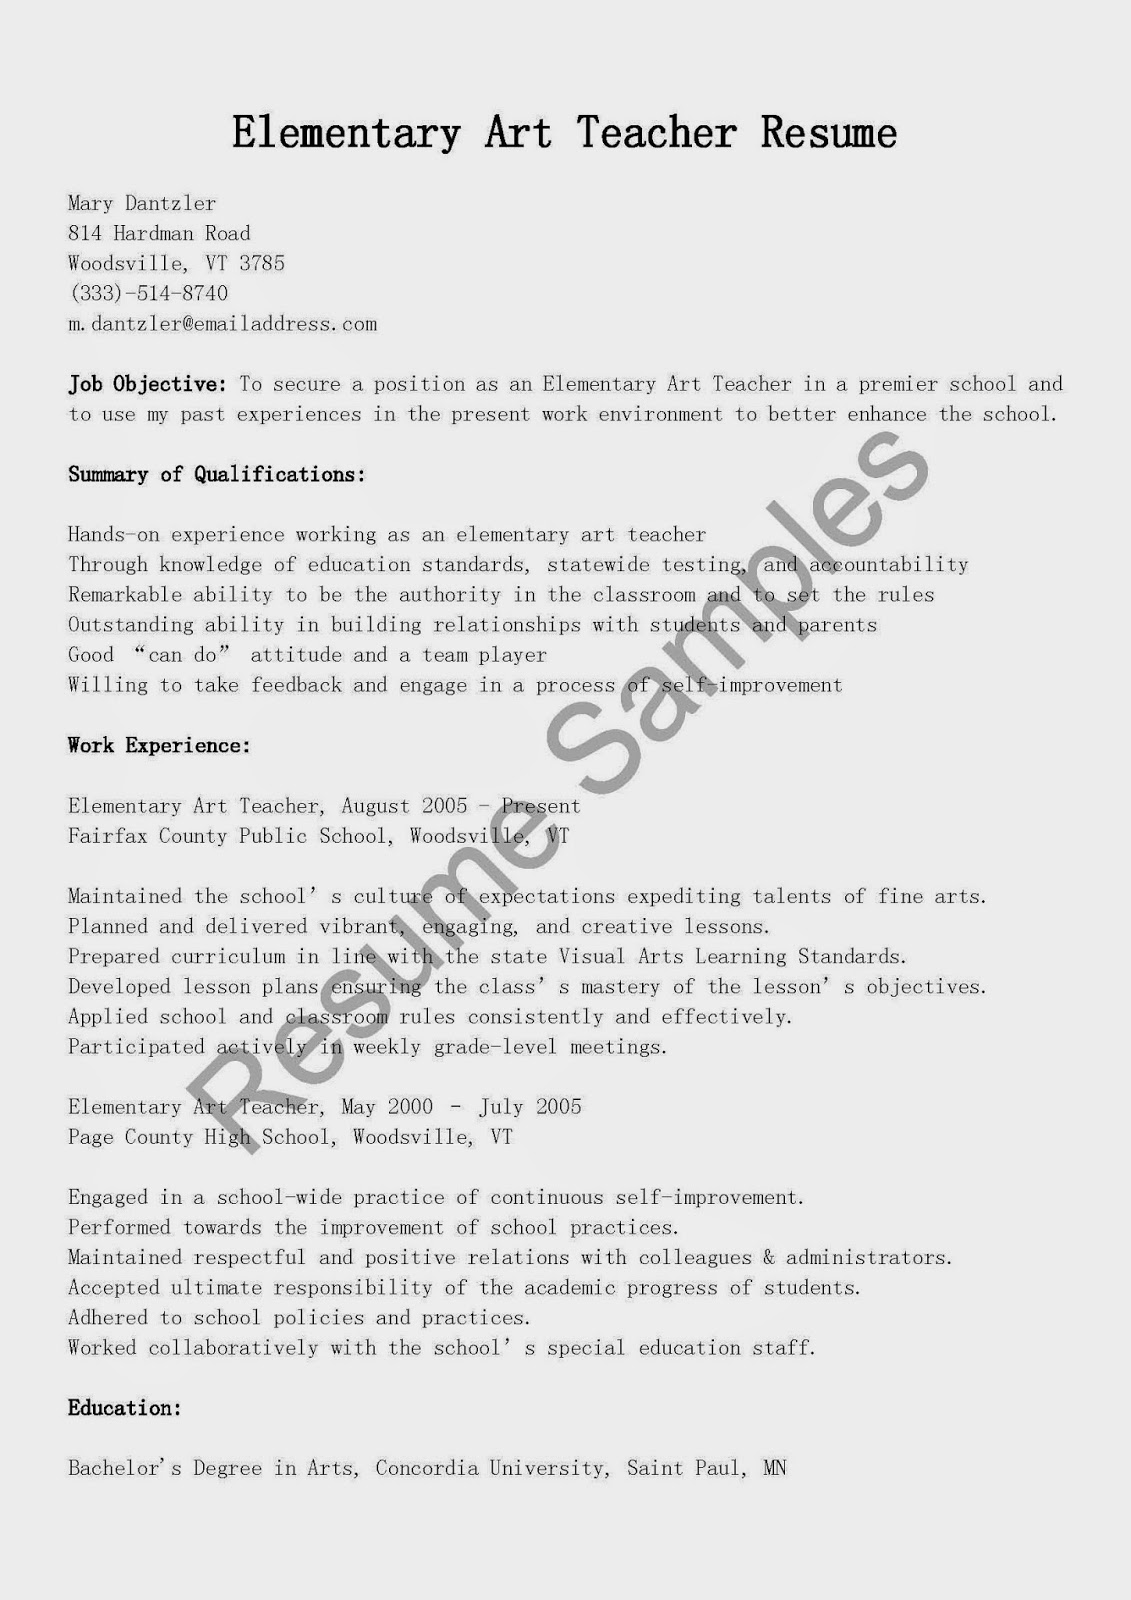 Art And Craft Teacher Resume Resume Samples Elementary Art Teacher Resume Sample